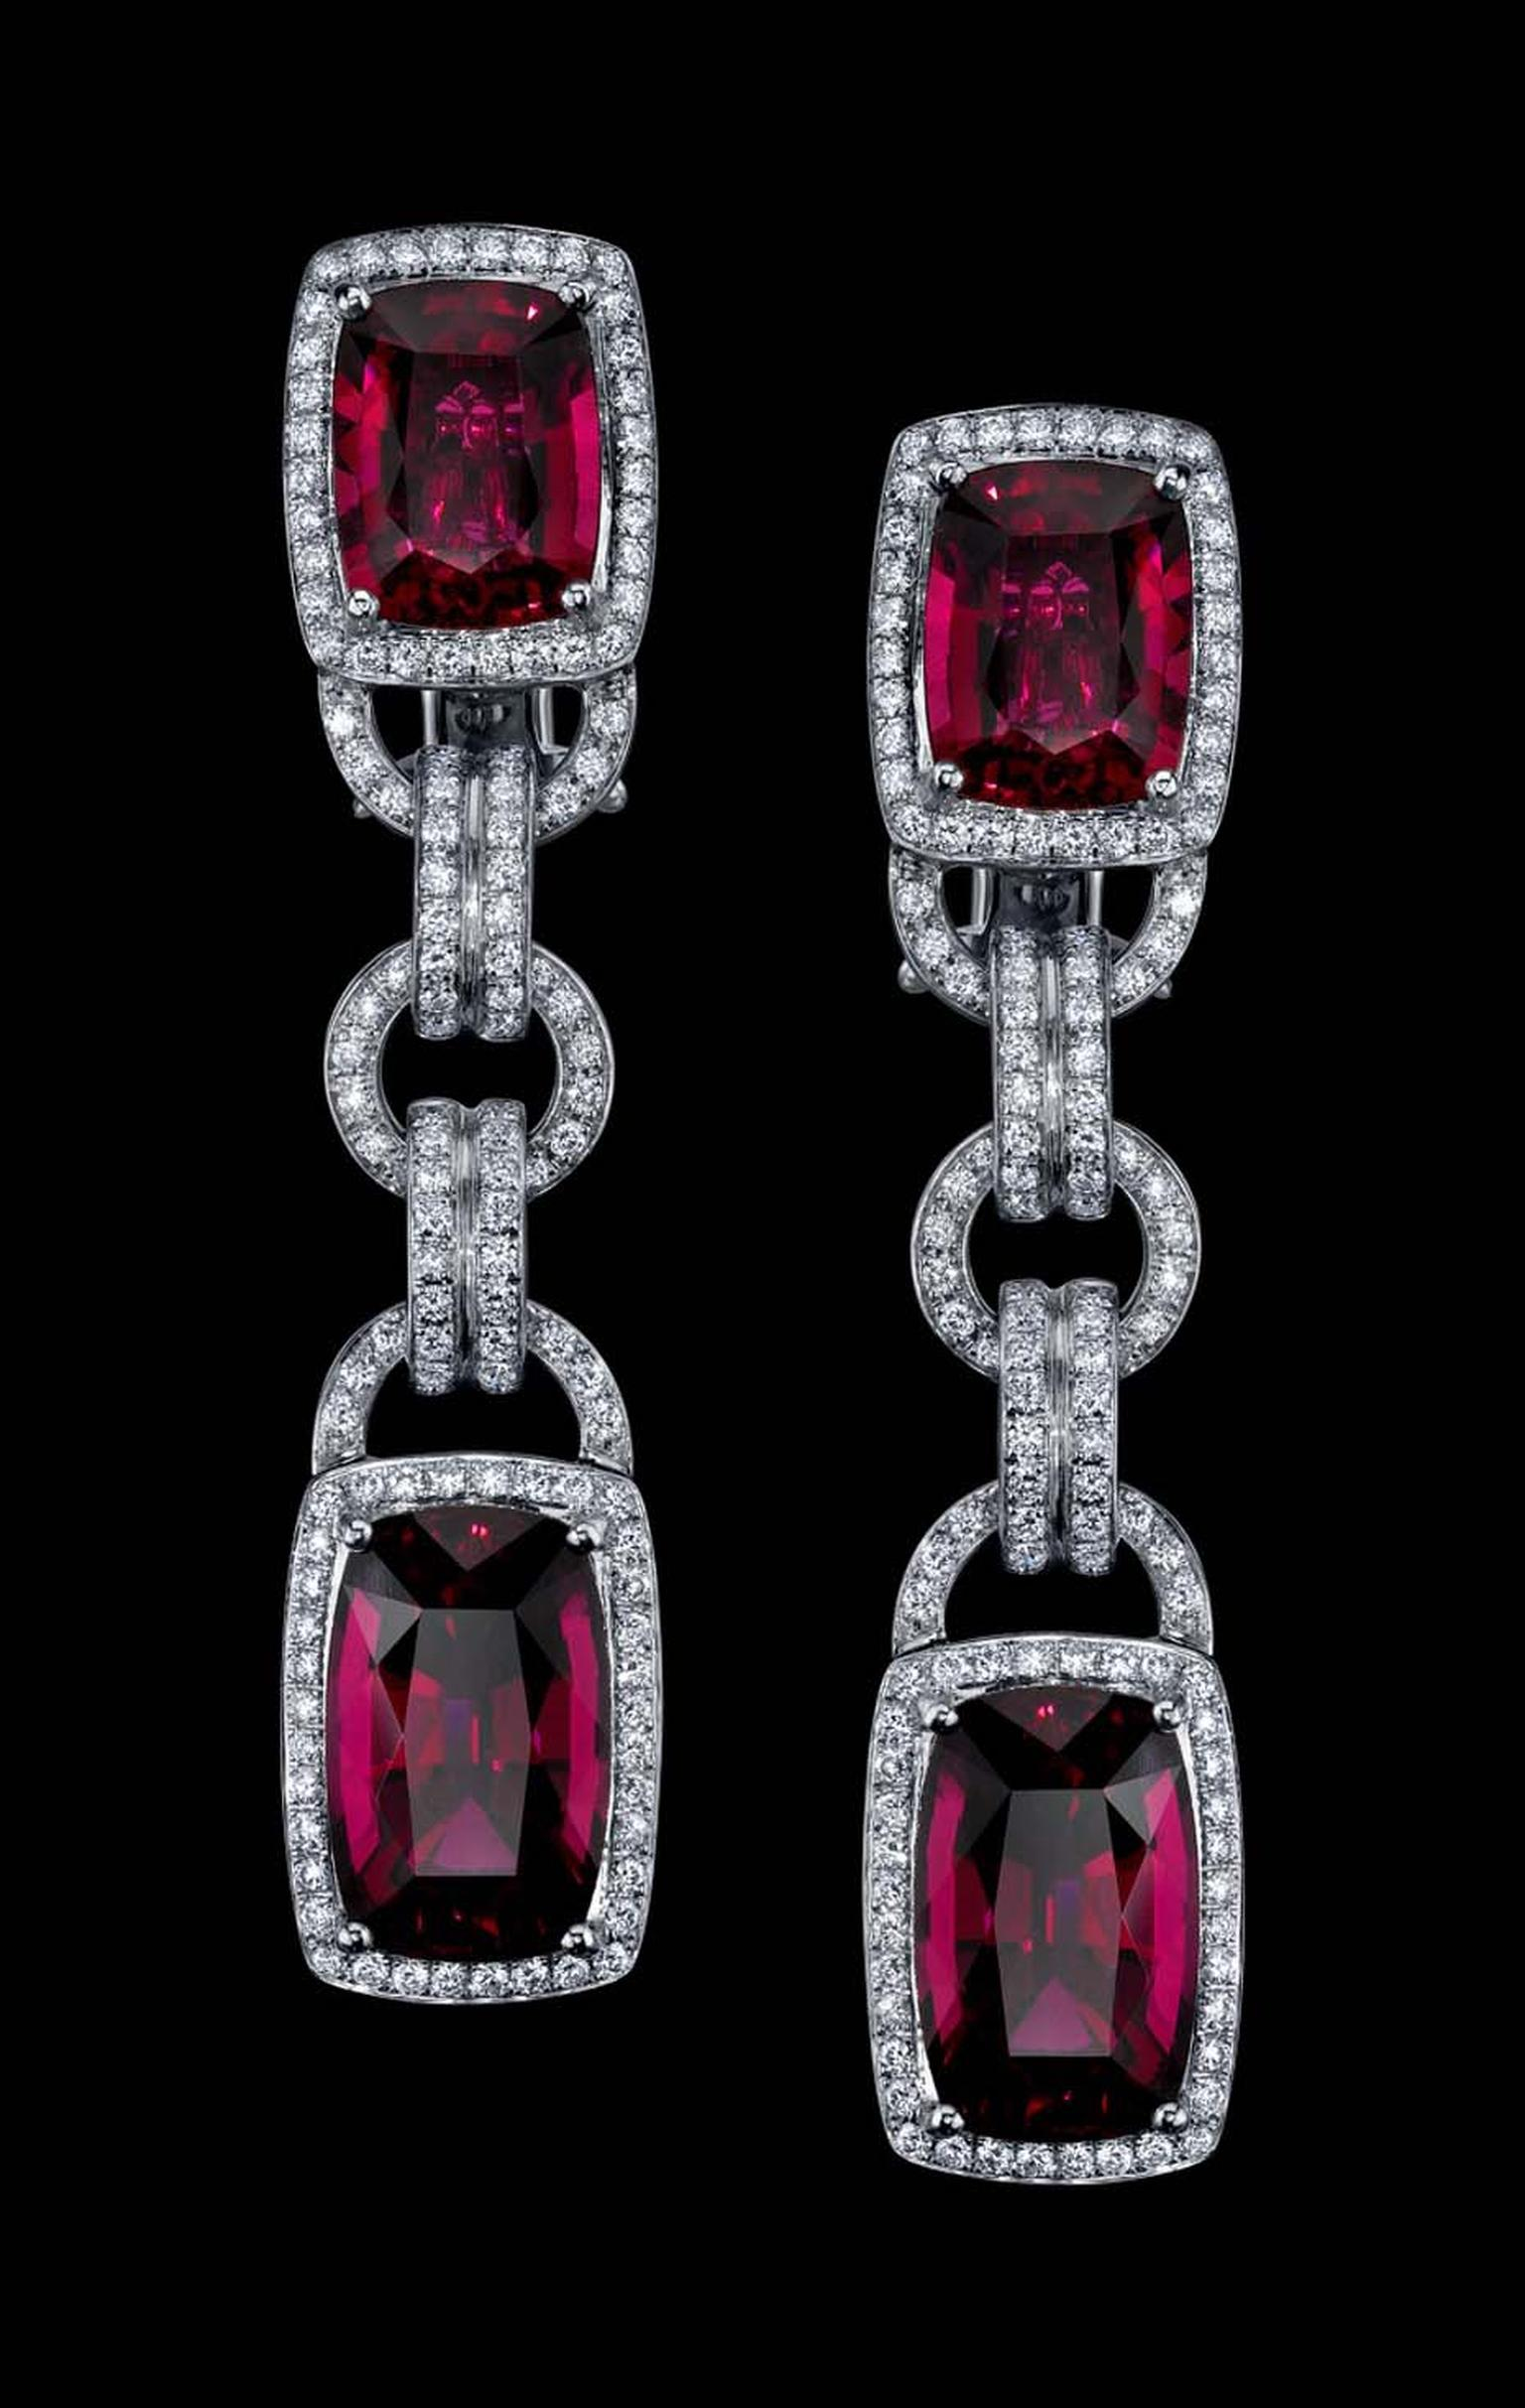 Robert Procop Parisian deco rubellite and diamond earrings